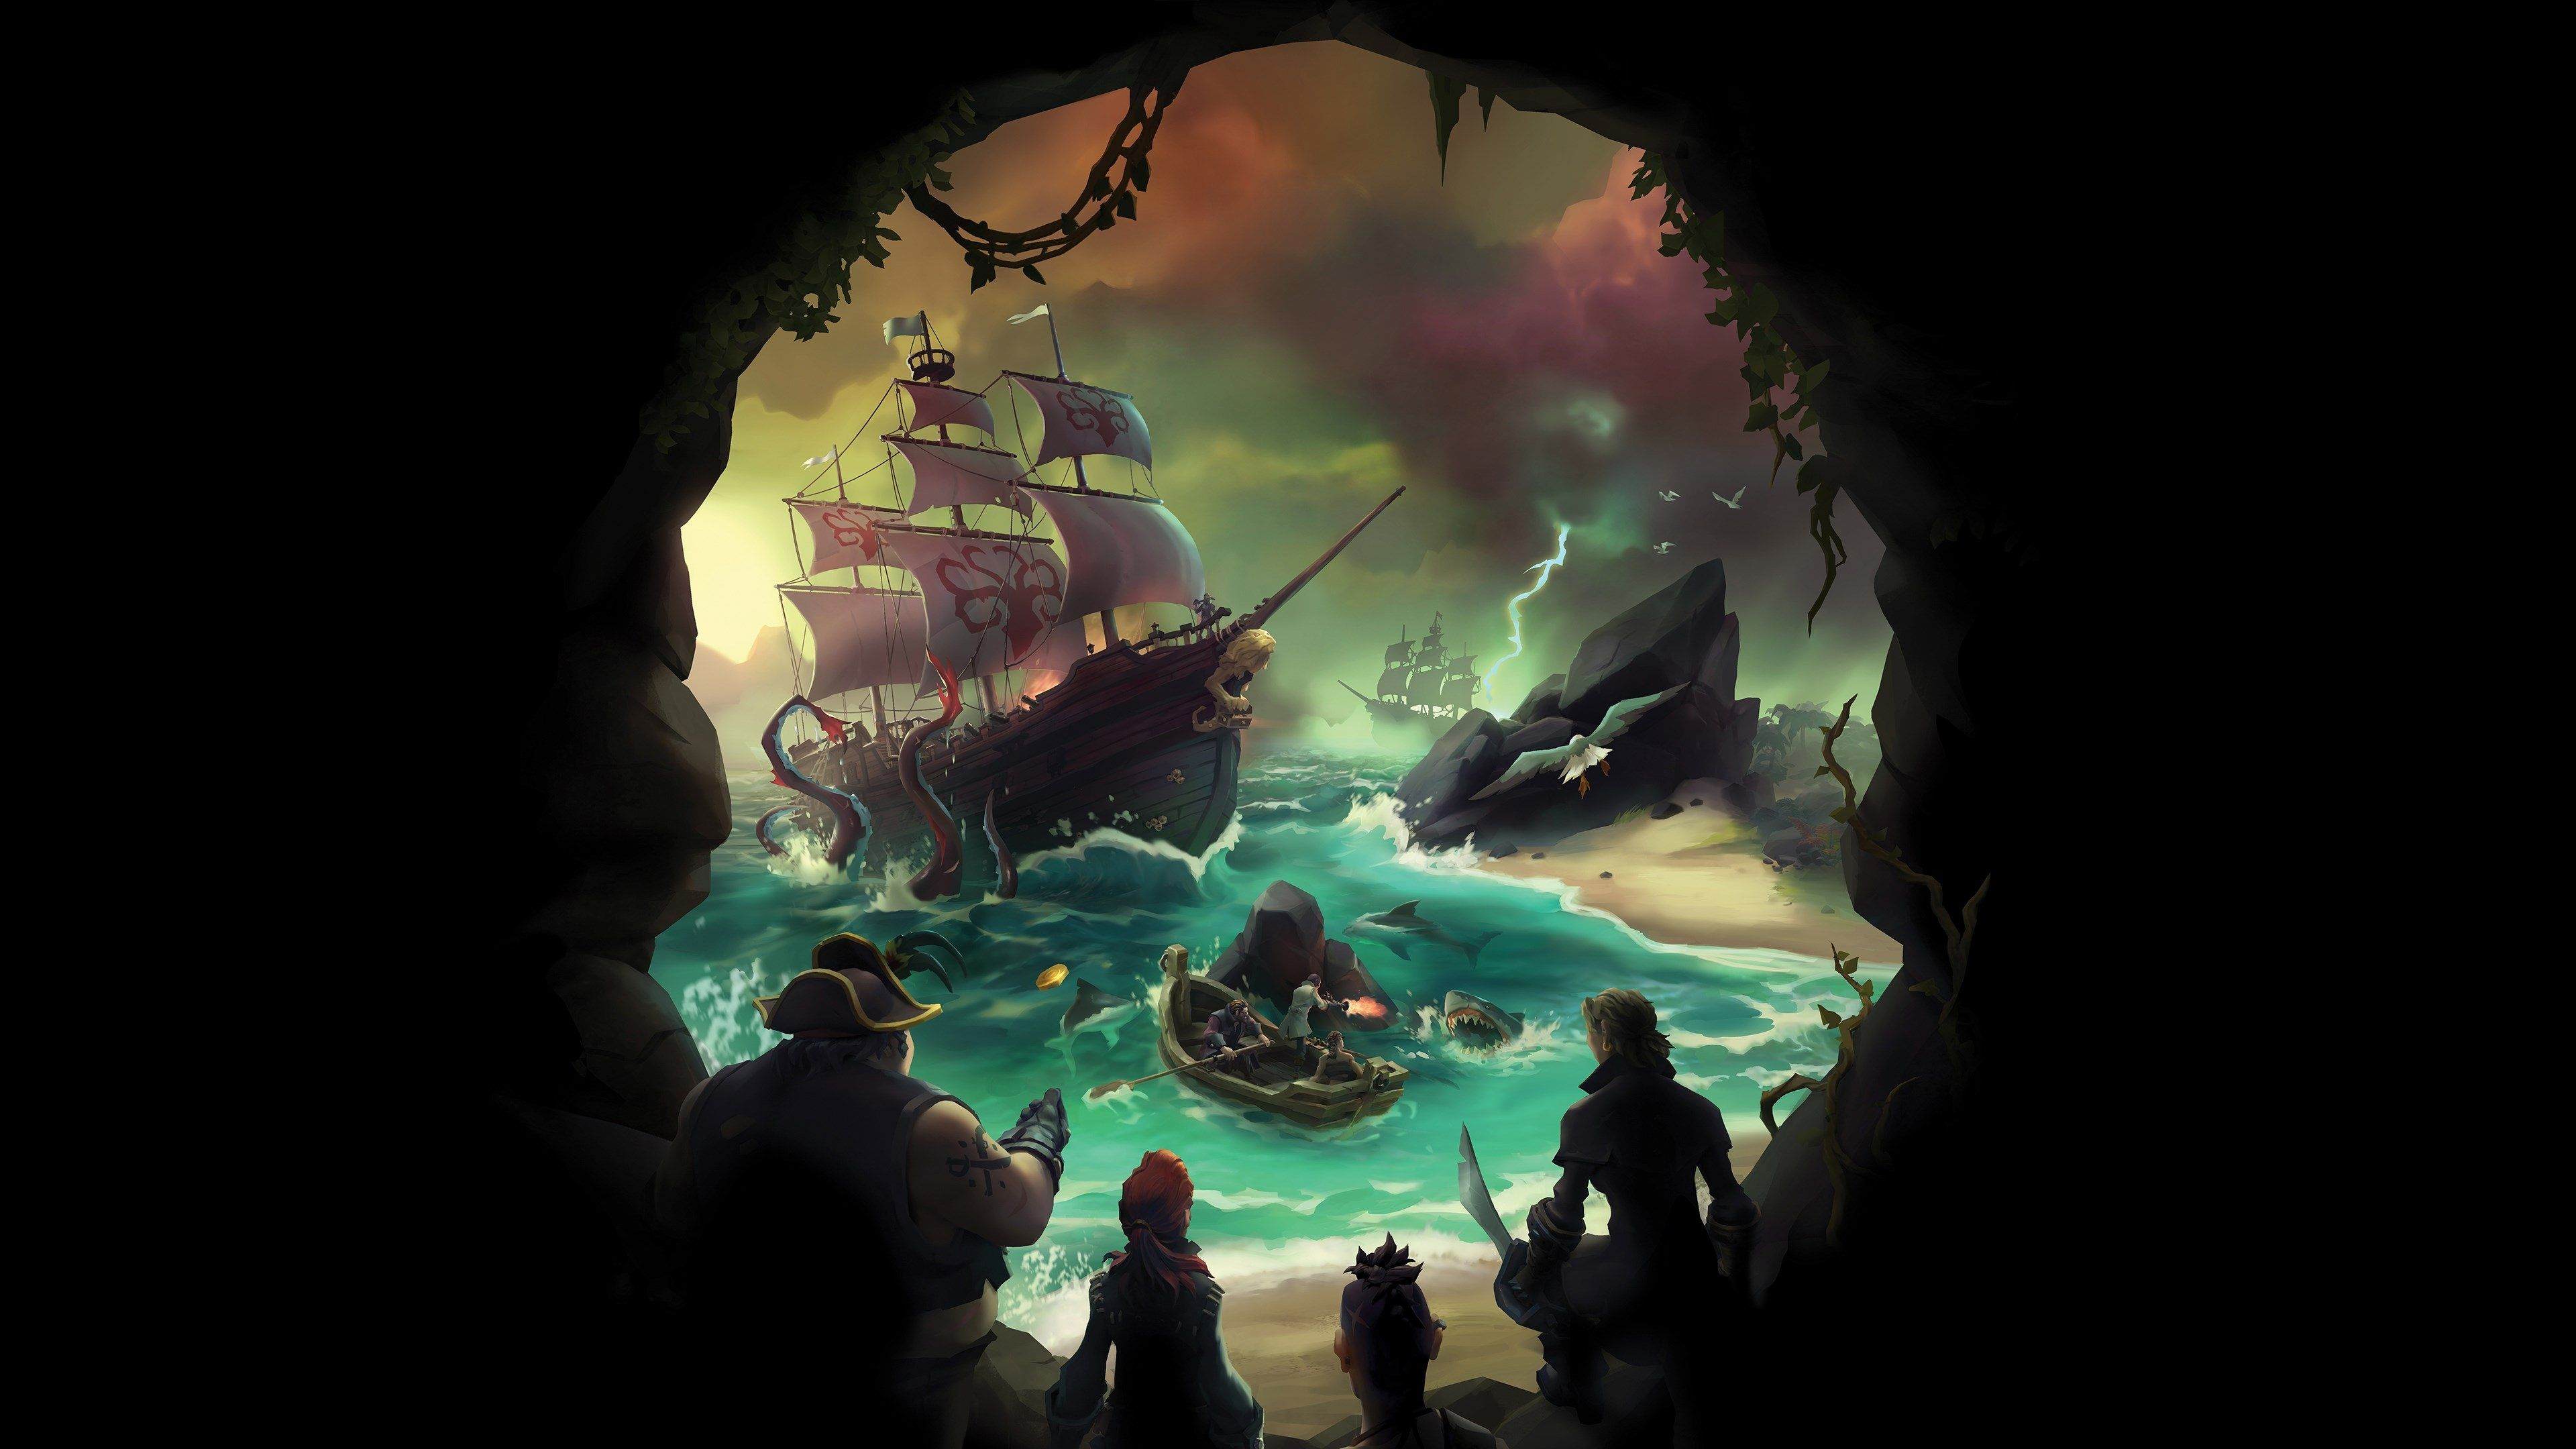 3840x2160 Sea Of Thieves 4k Hd Wallpaper For Macbook Pro Sea Of Thieves Sea Of Thieves Game Sea